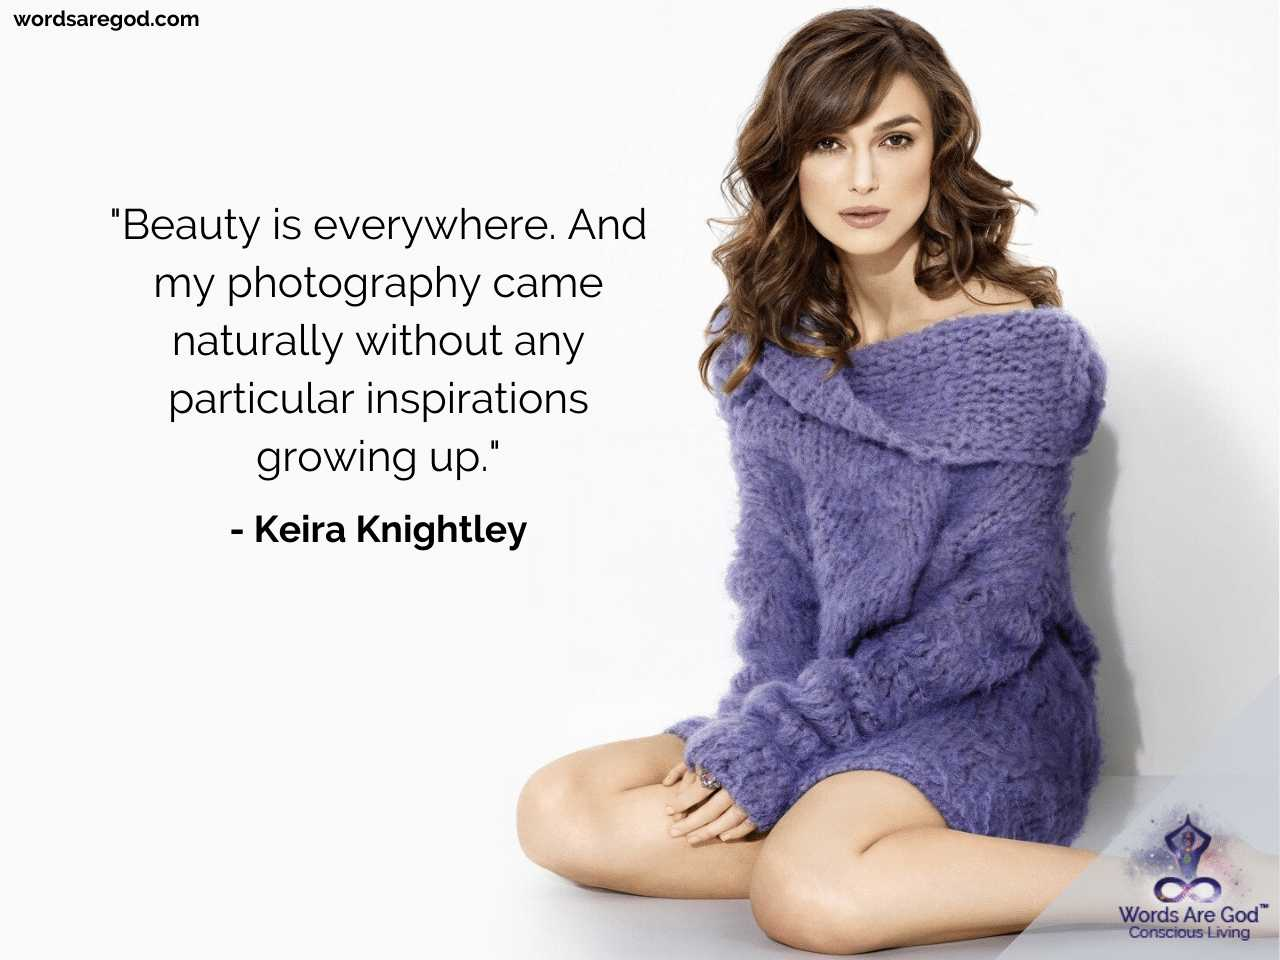 Keira Knightley Inspirational Quotes by Keira Knightley